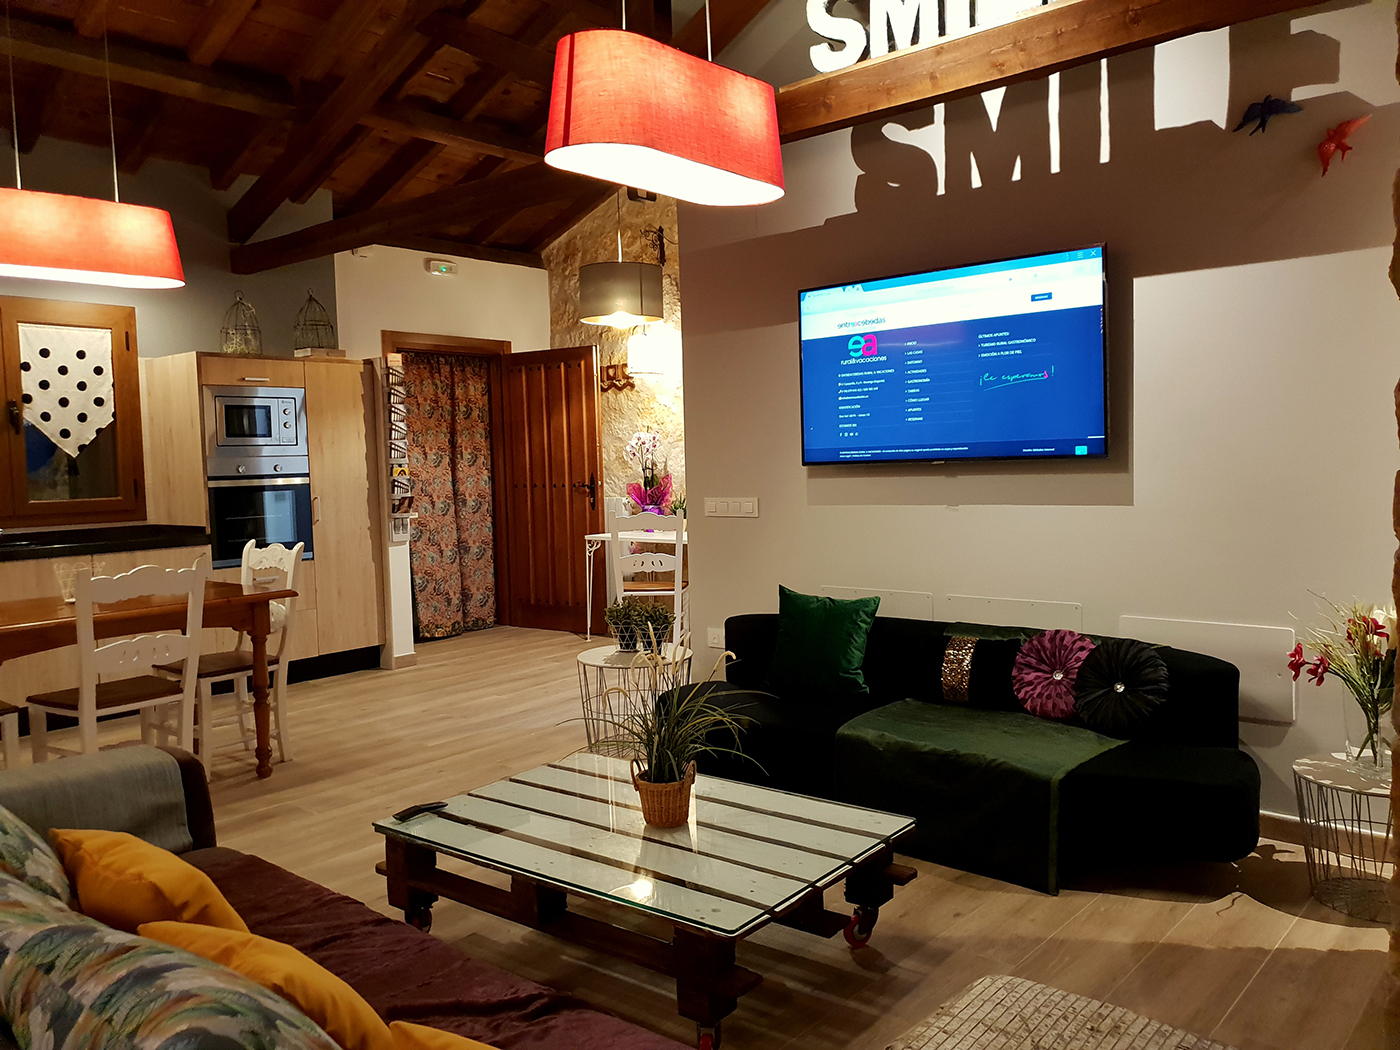 Salon con smart tv